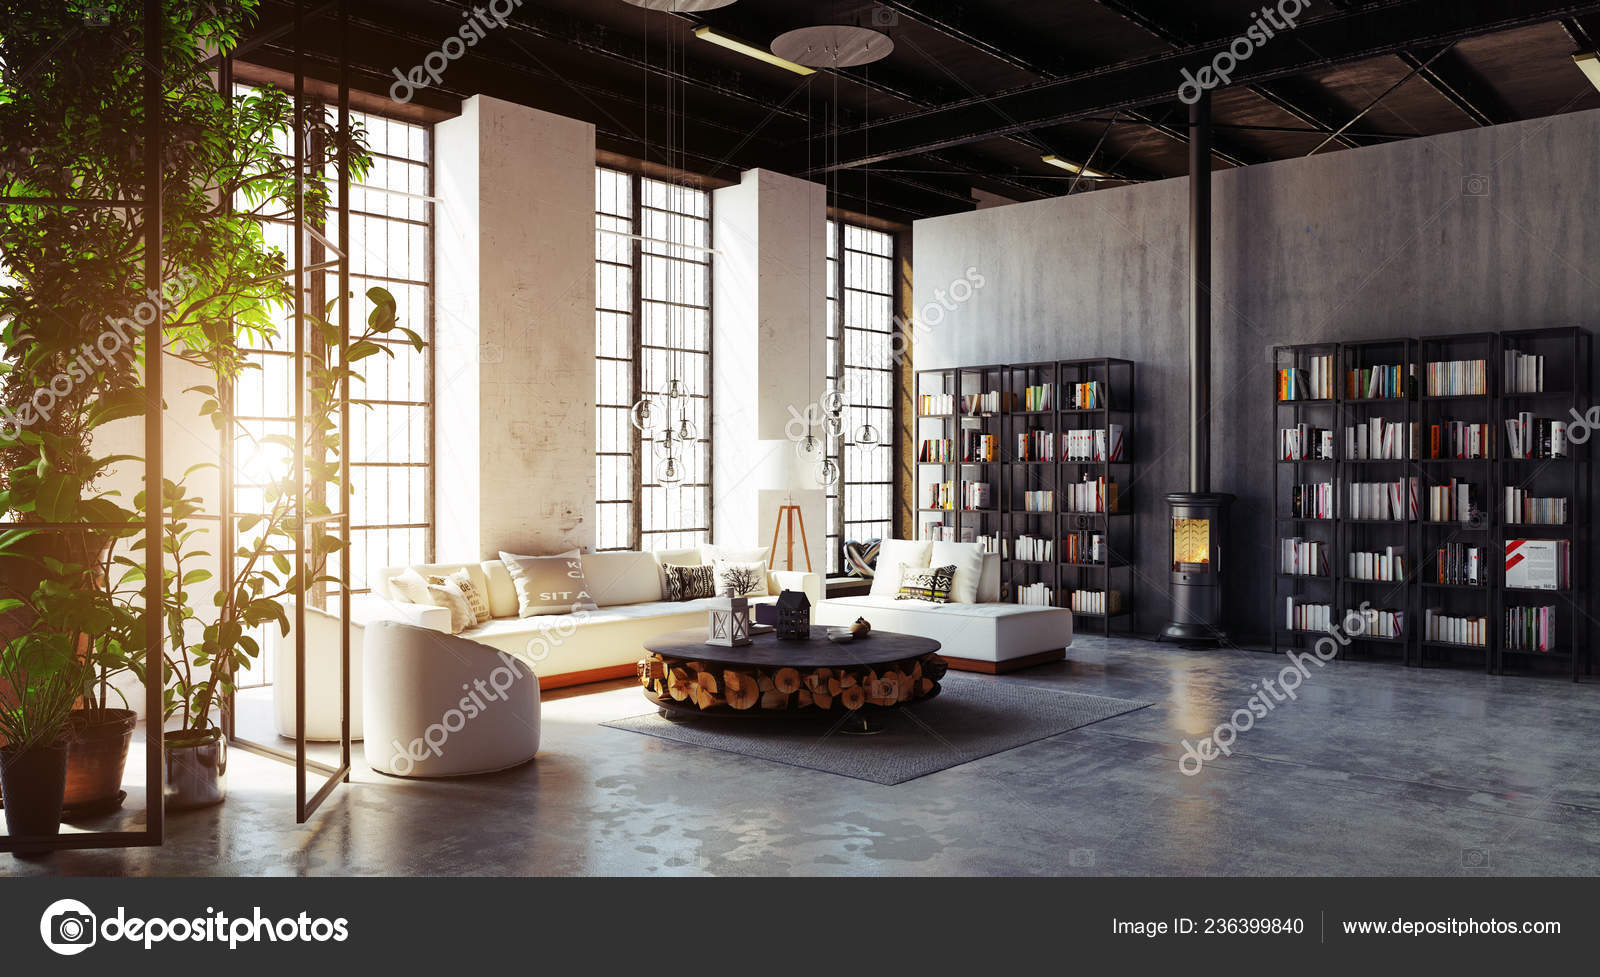 Beautiful House Interior Design In The Philippines Modern Loft Living Room Interior Rendering Design Concept Stock Photo C Vicnt2815 236399840